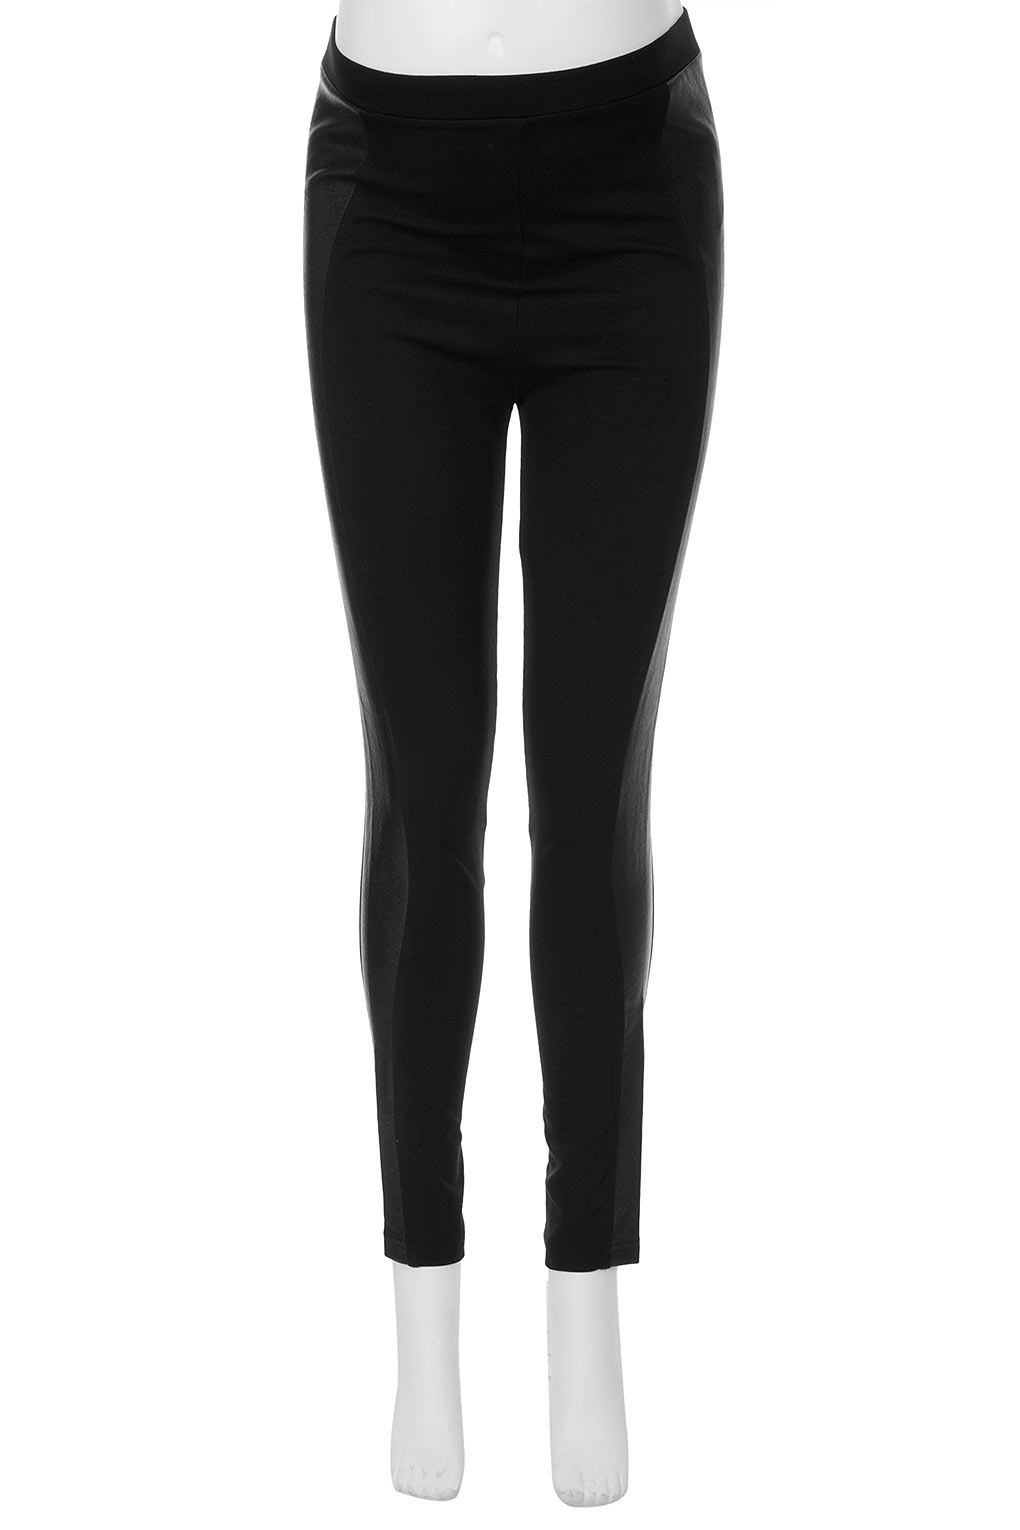 10 Best Maternity Leggings. Clothing. Maternity. Pants & Leggings. These $13 cotton leggings look and feel great on. FUN FACT: These leggings are made of soft, organic cotton jersey. STYLE WITH: Your favorite tunic and leather jacket. Consider yourself dinner-date ready.